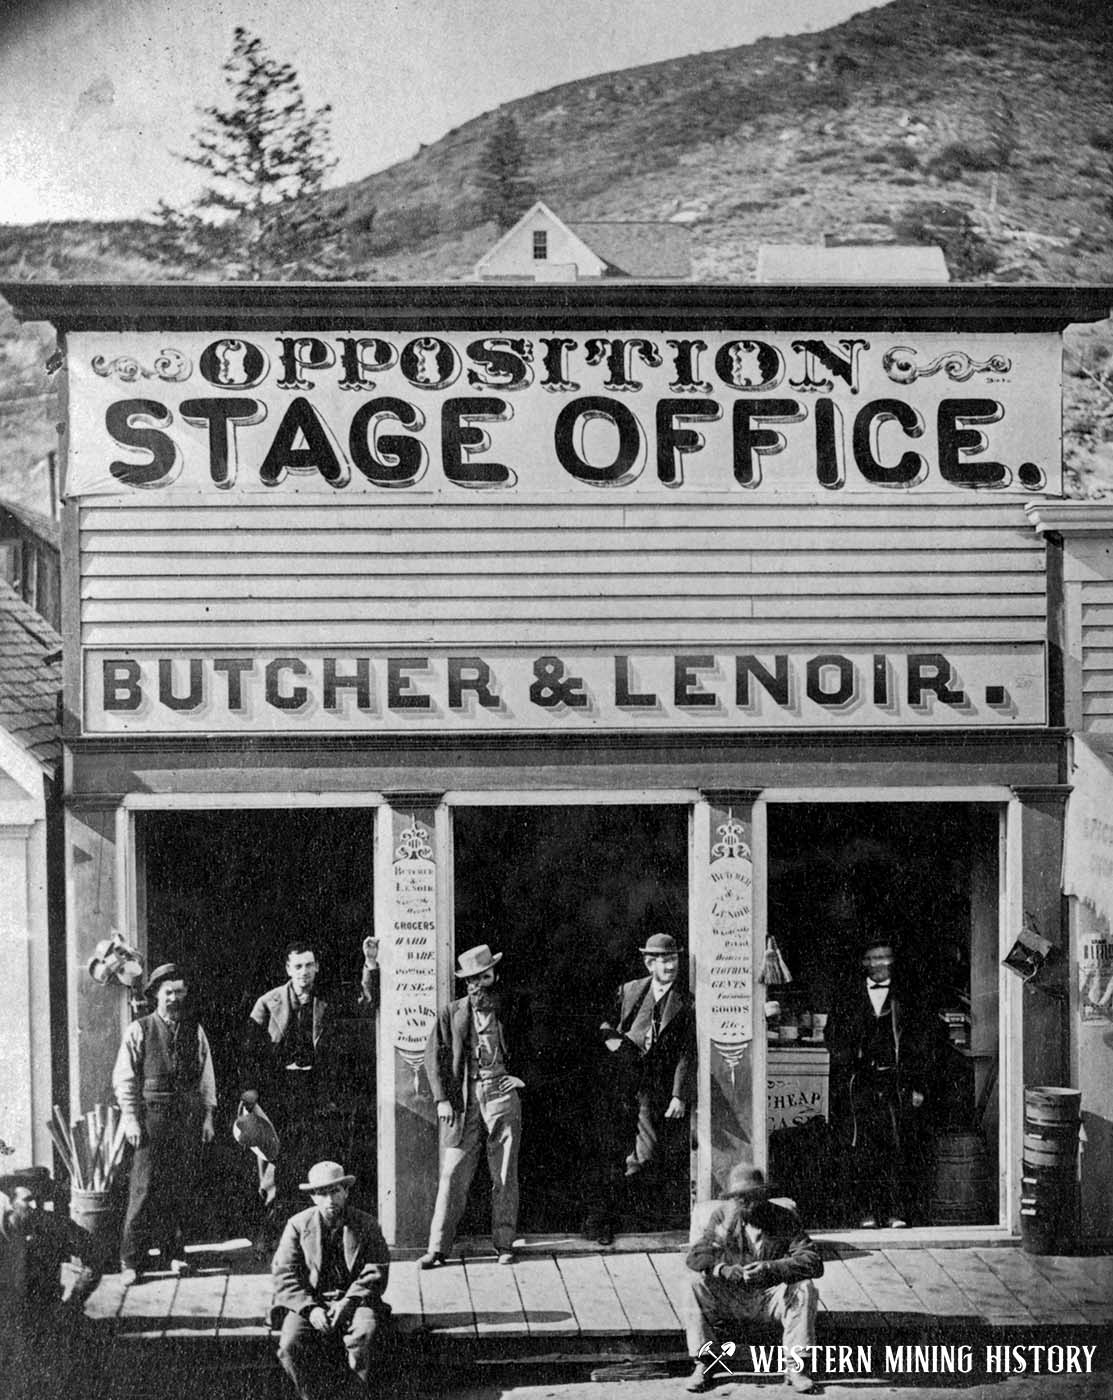 Silver City stage office in 1868